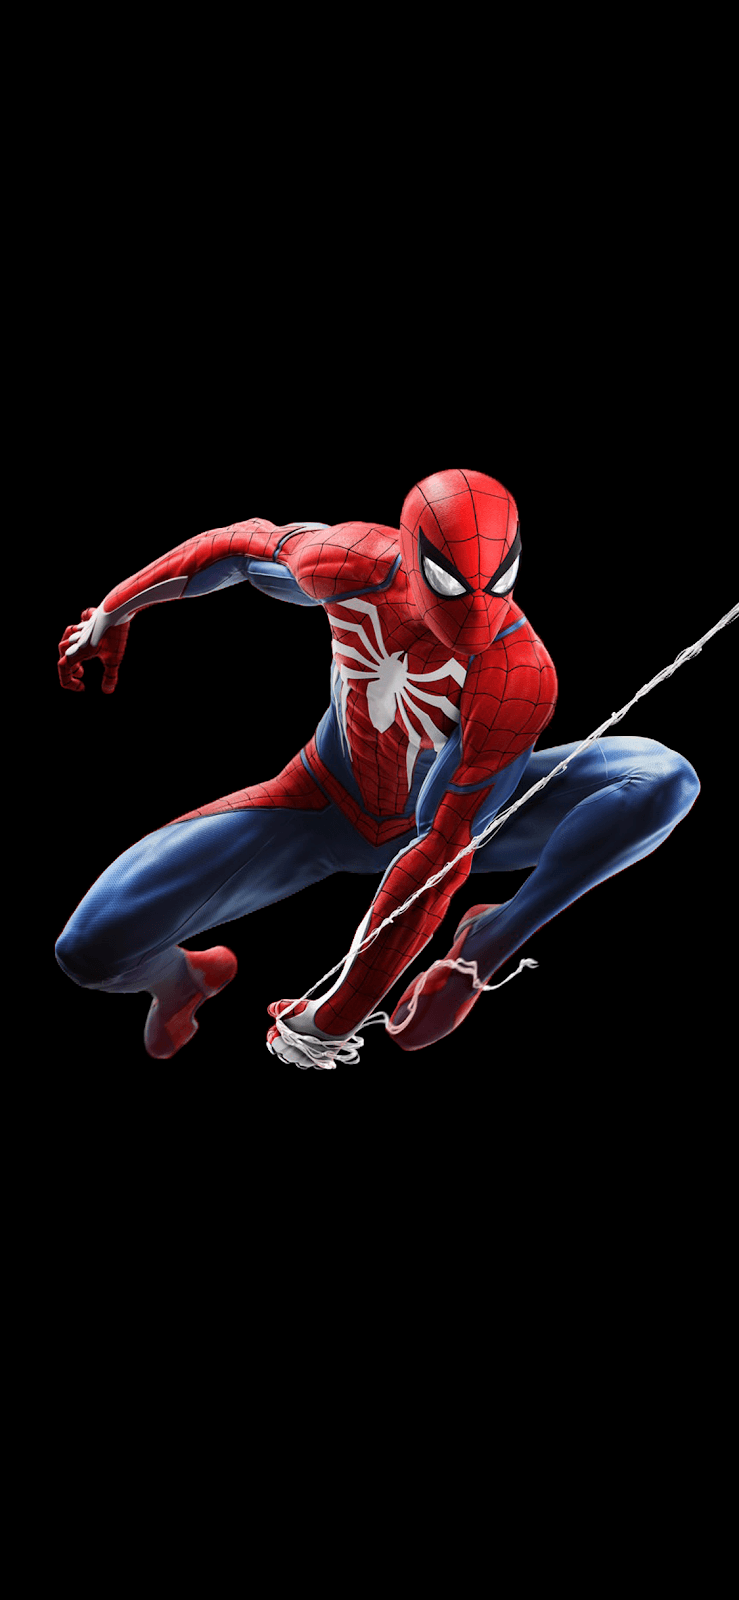 Spider Man Iphone Xr Wallpapers Wallpaper Cave